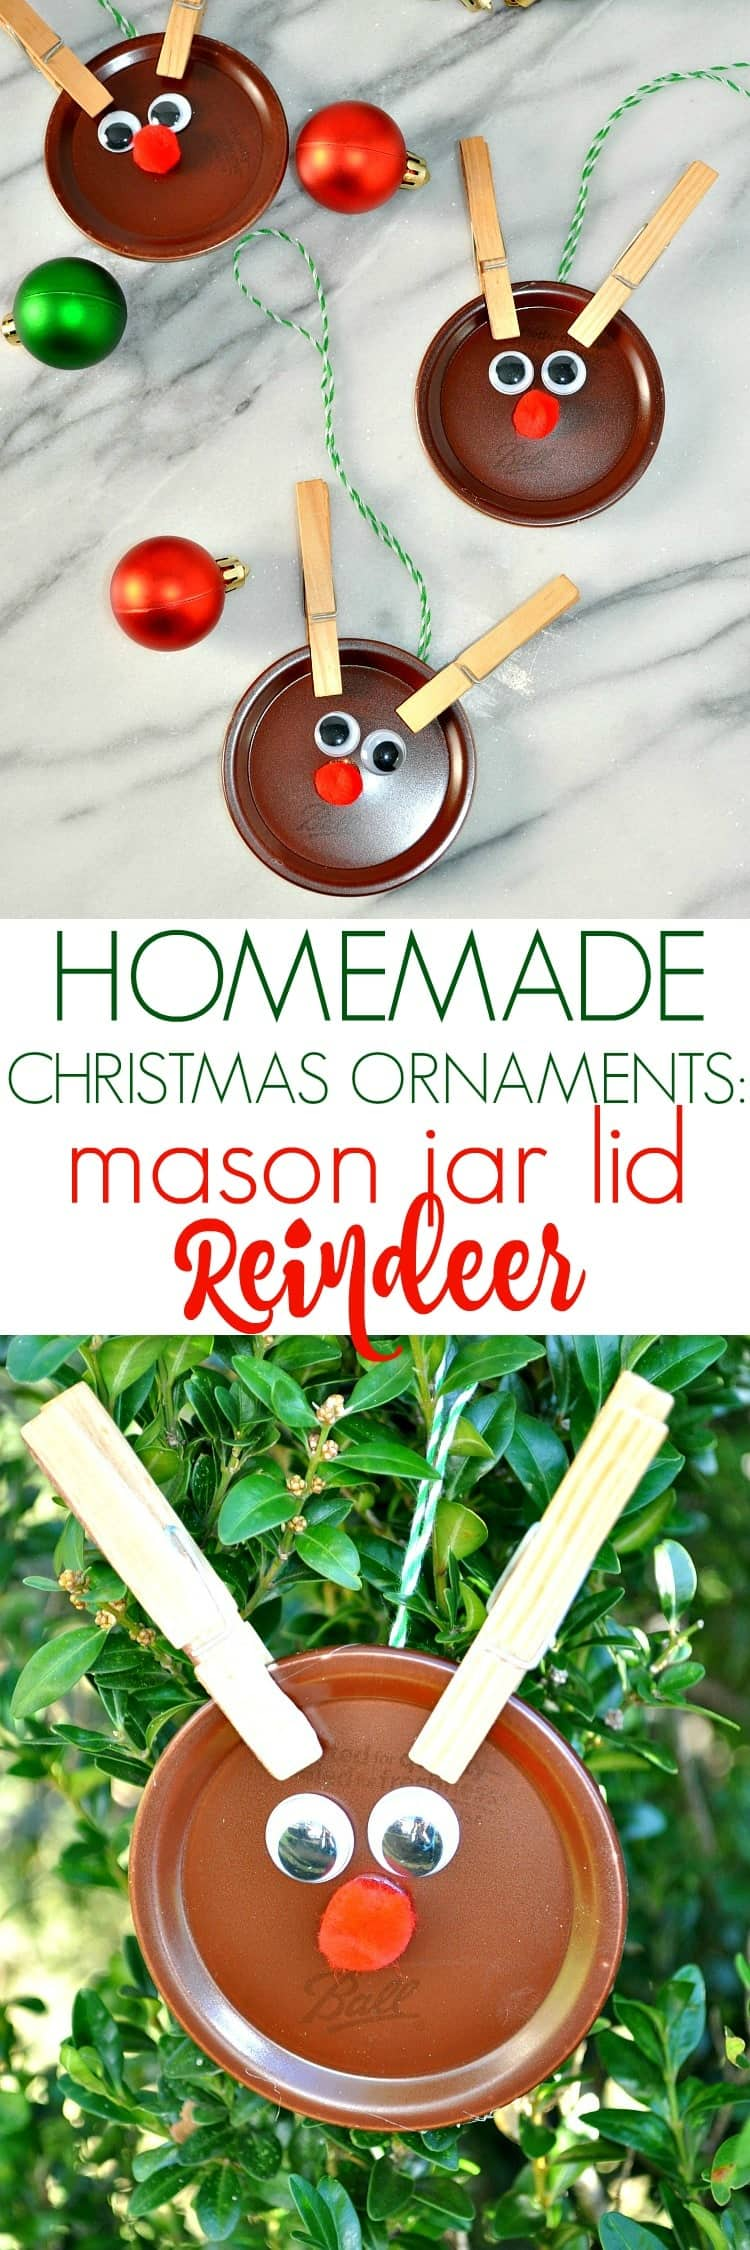 Homemade Christmas Ornaments: Mason Jar Lid Reindeer - The ...